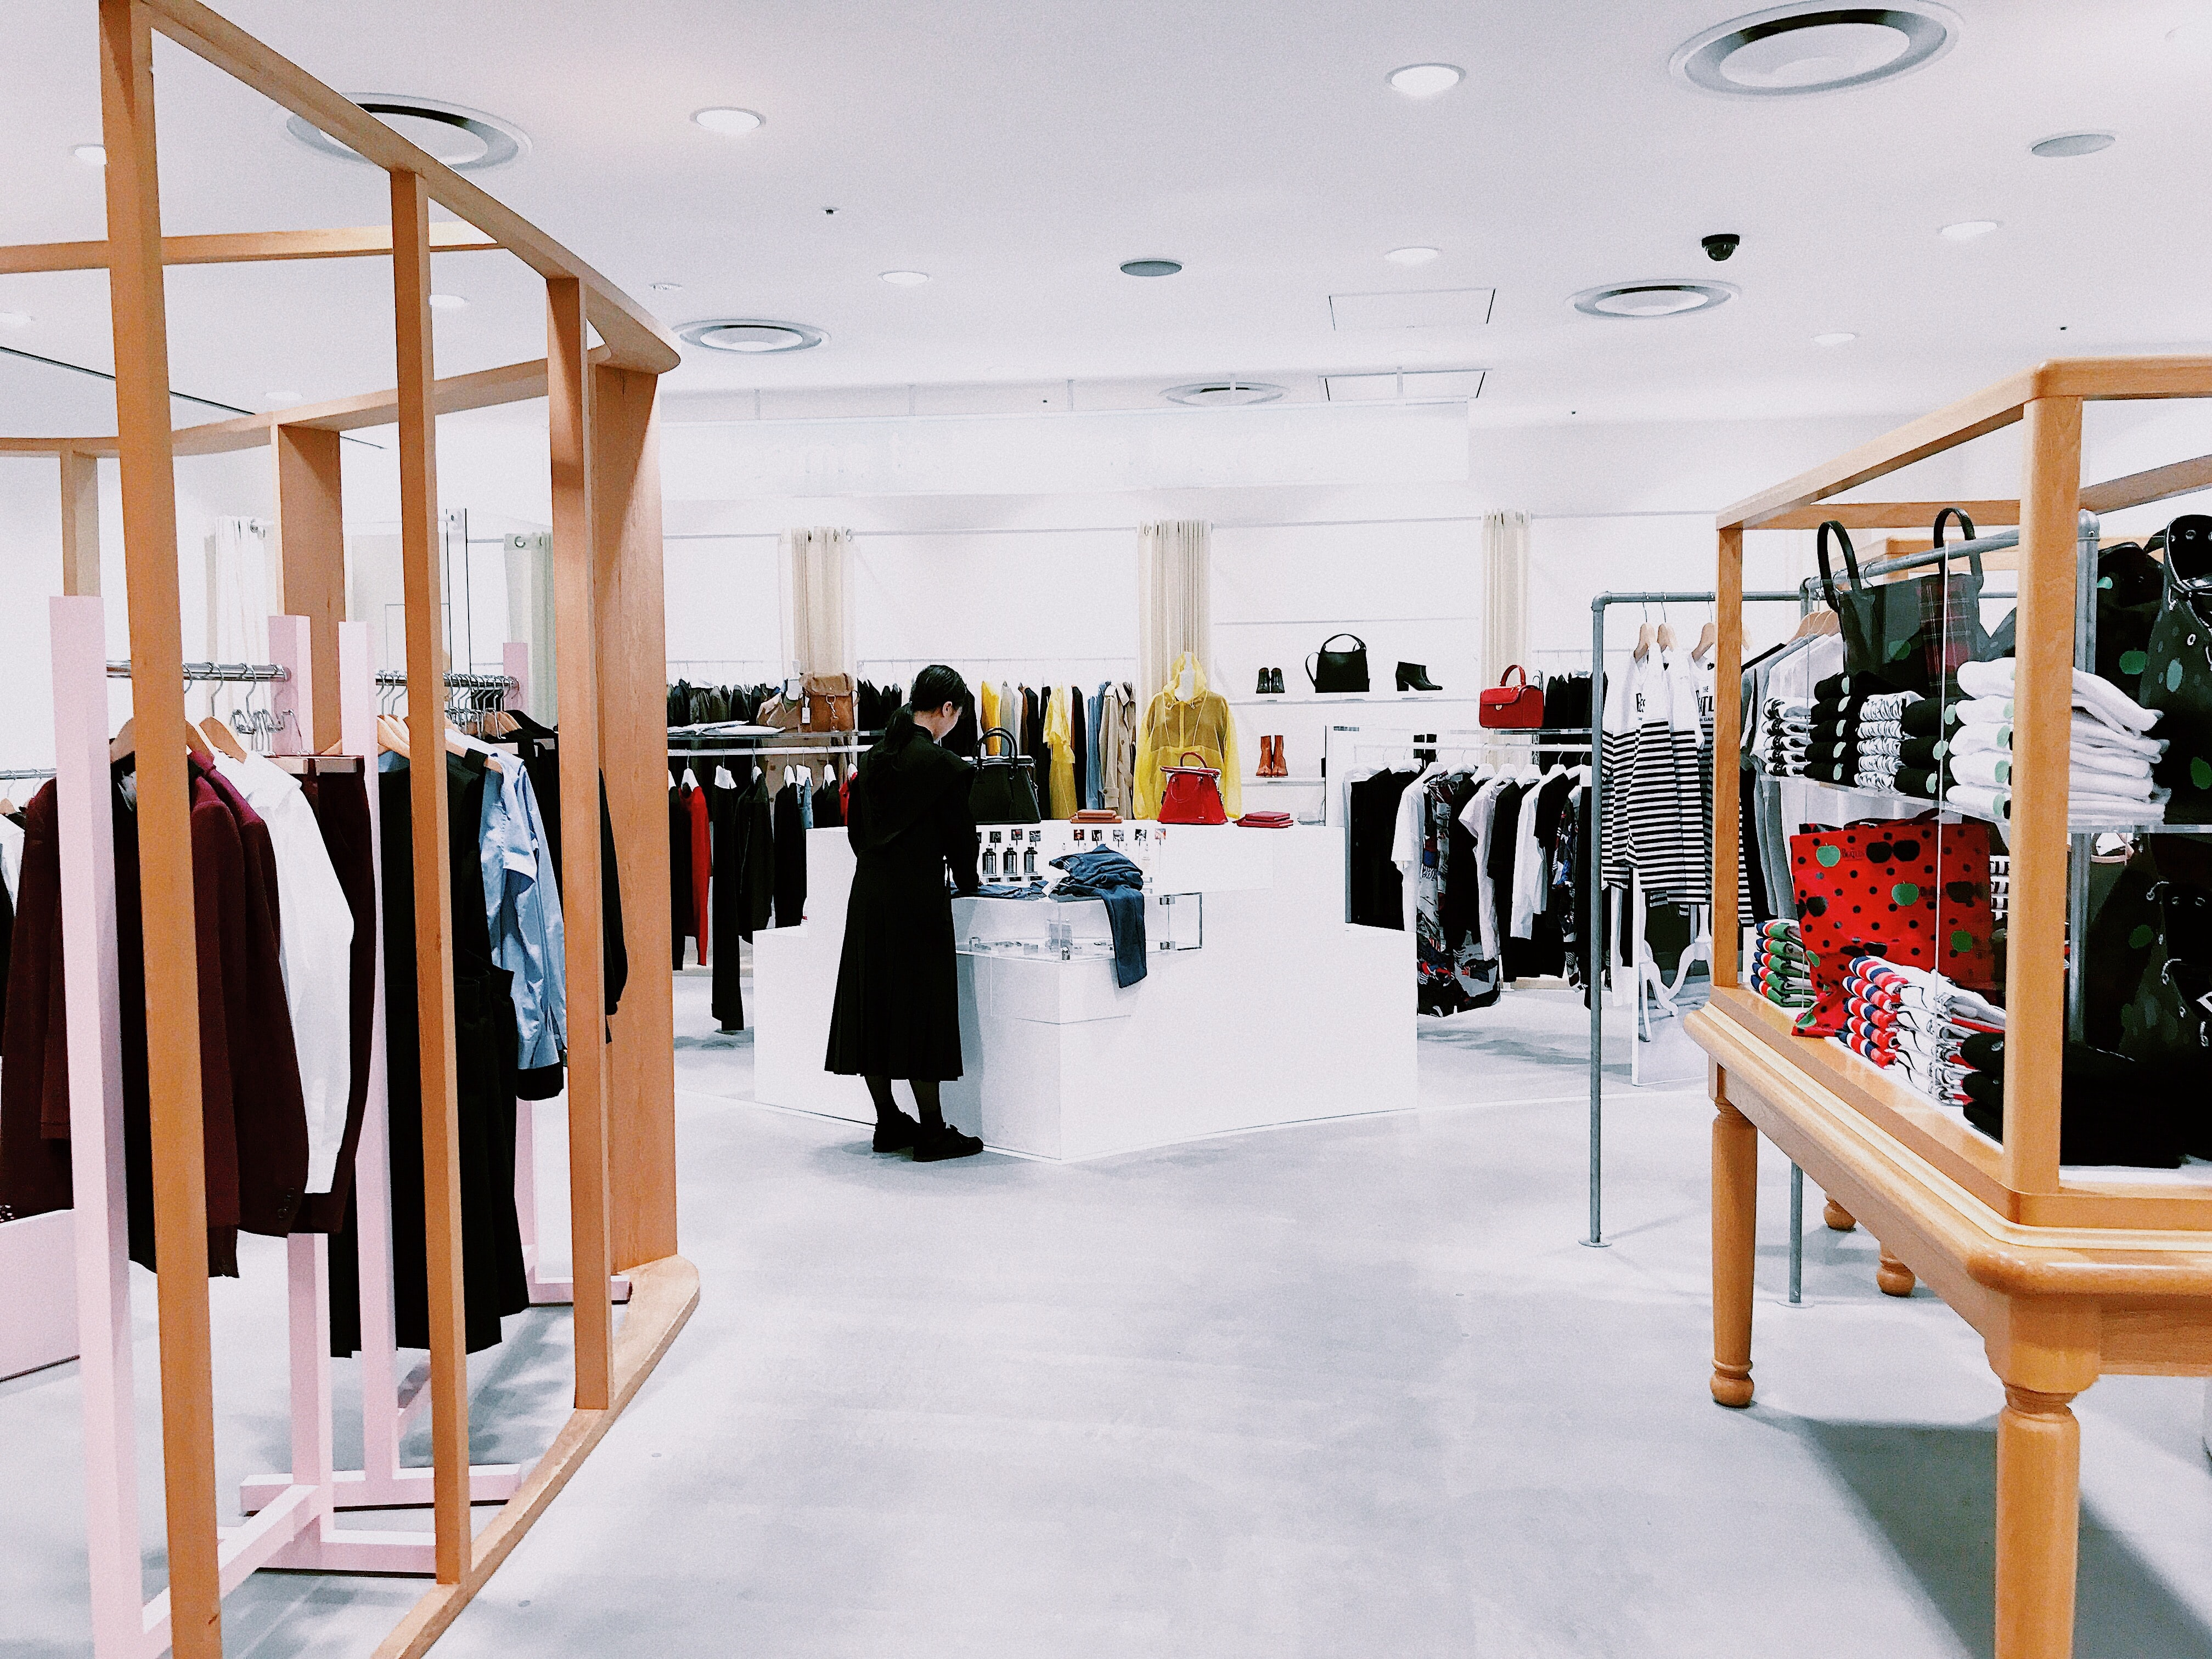 Neiman Marcus Spends on Supply Chain